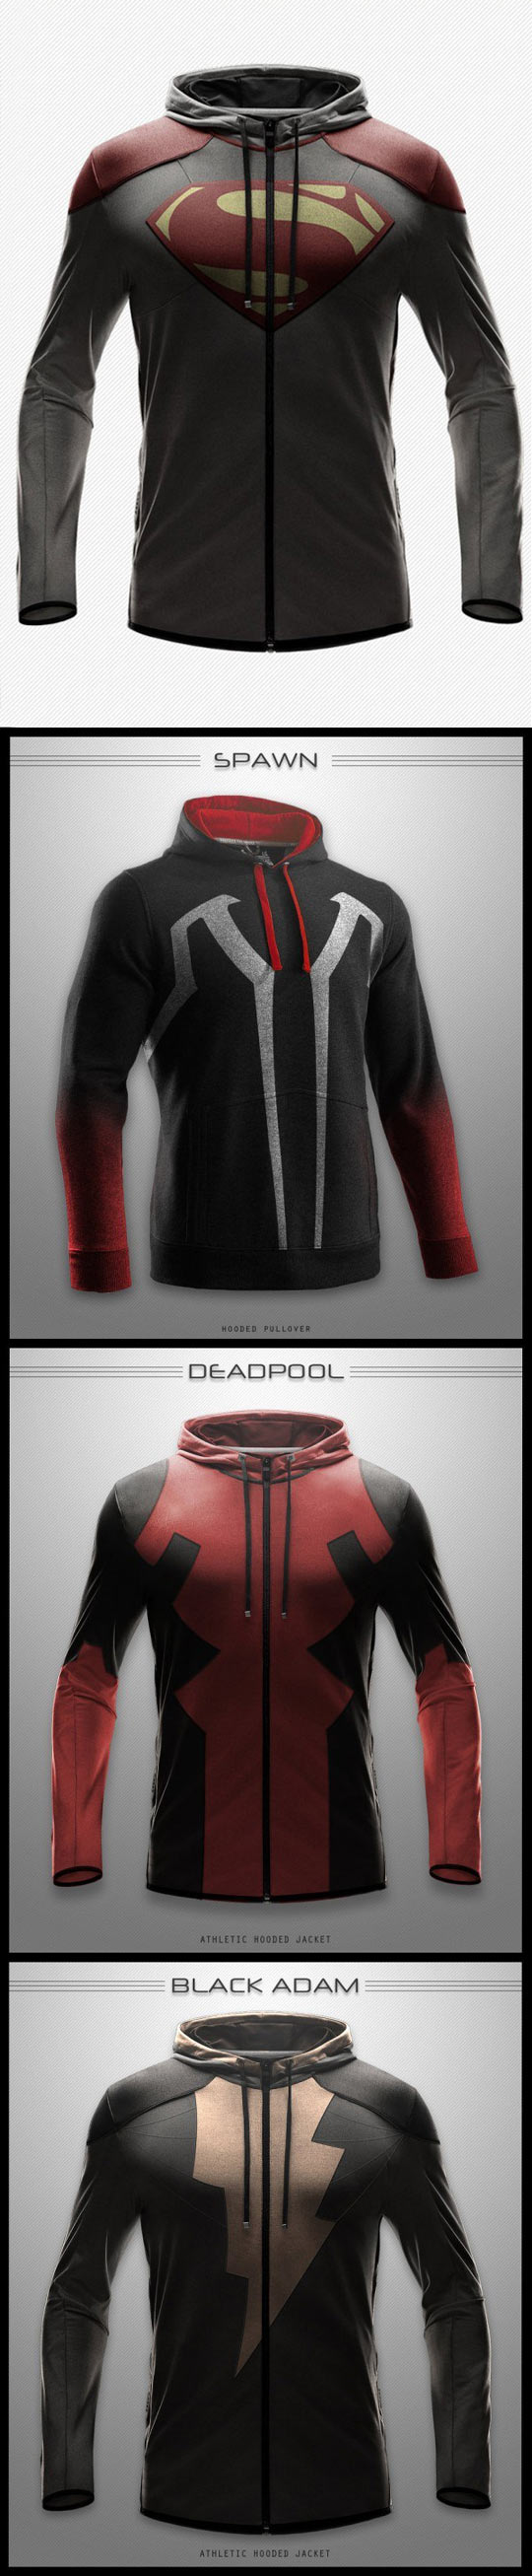 funny-hoodies-icons-Superhero-Spawn